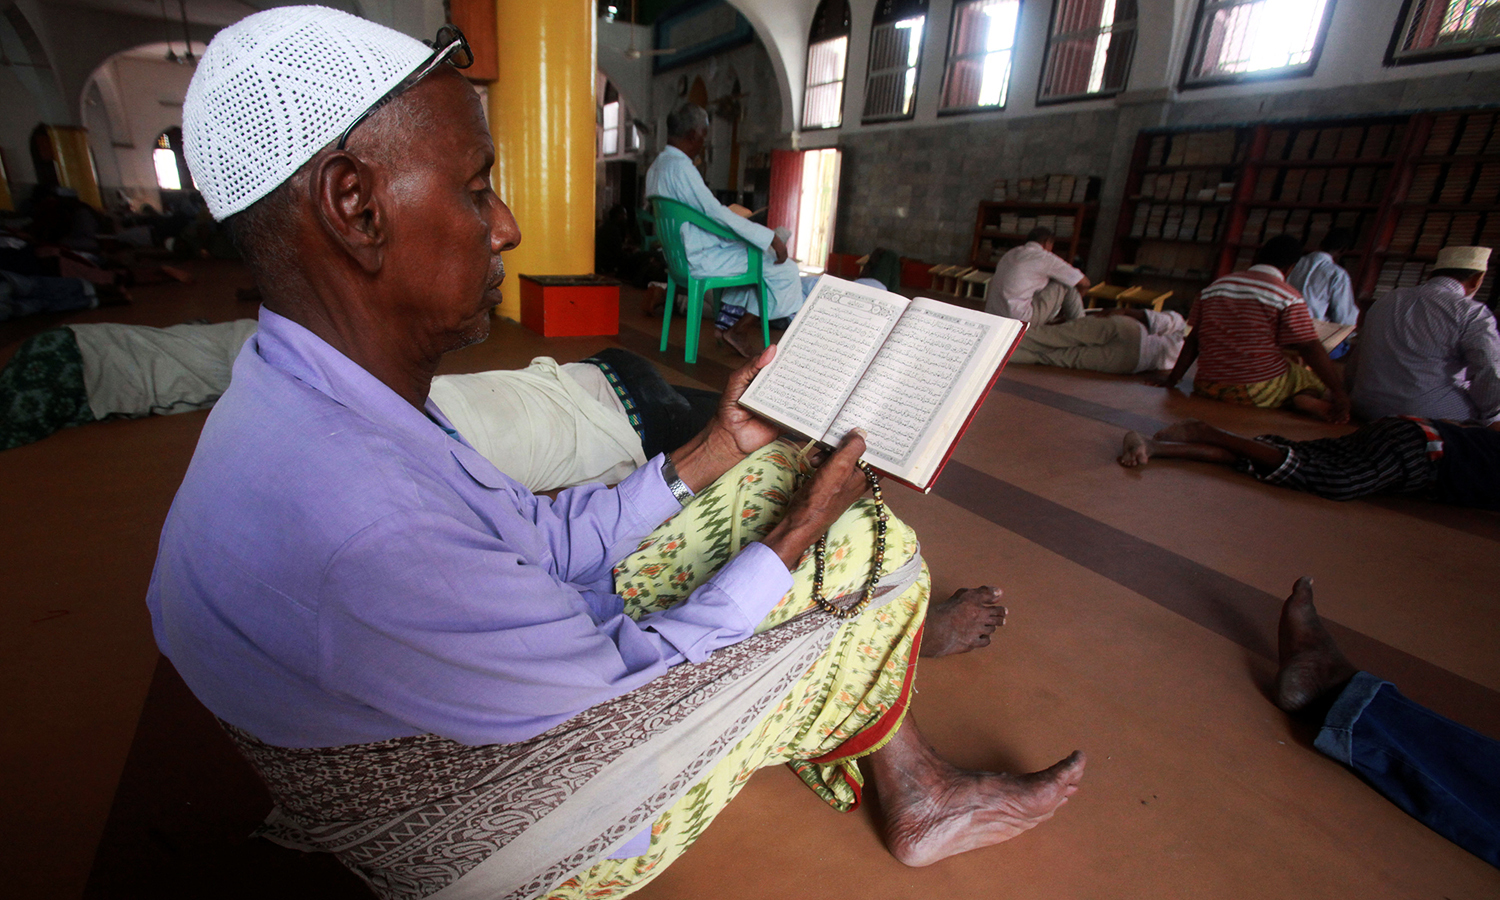 A Somali man reads the Quran on the second Friday of Ramazan inside the Marwaas Mosque in Mogadishu, Somalia June 17, 2016. ─ Reuters